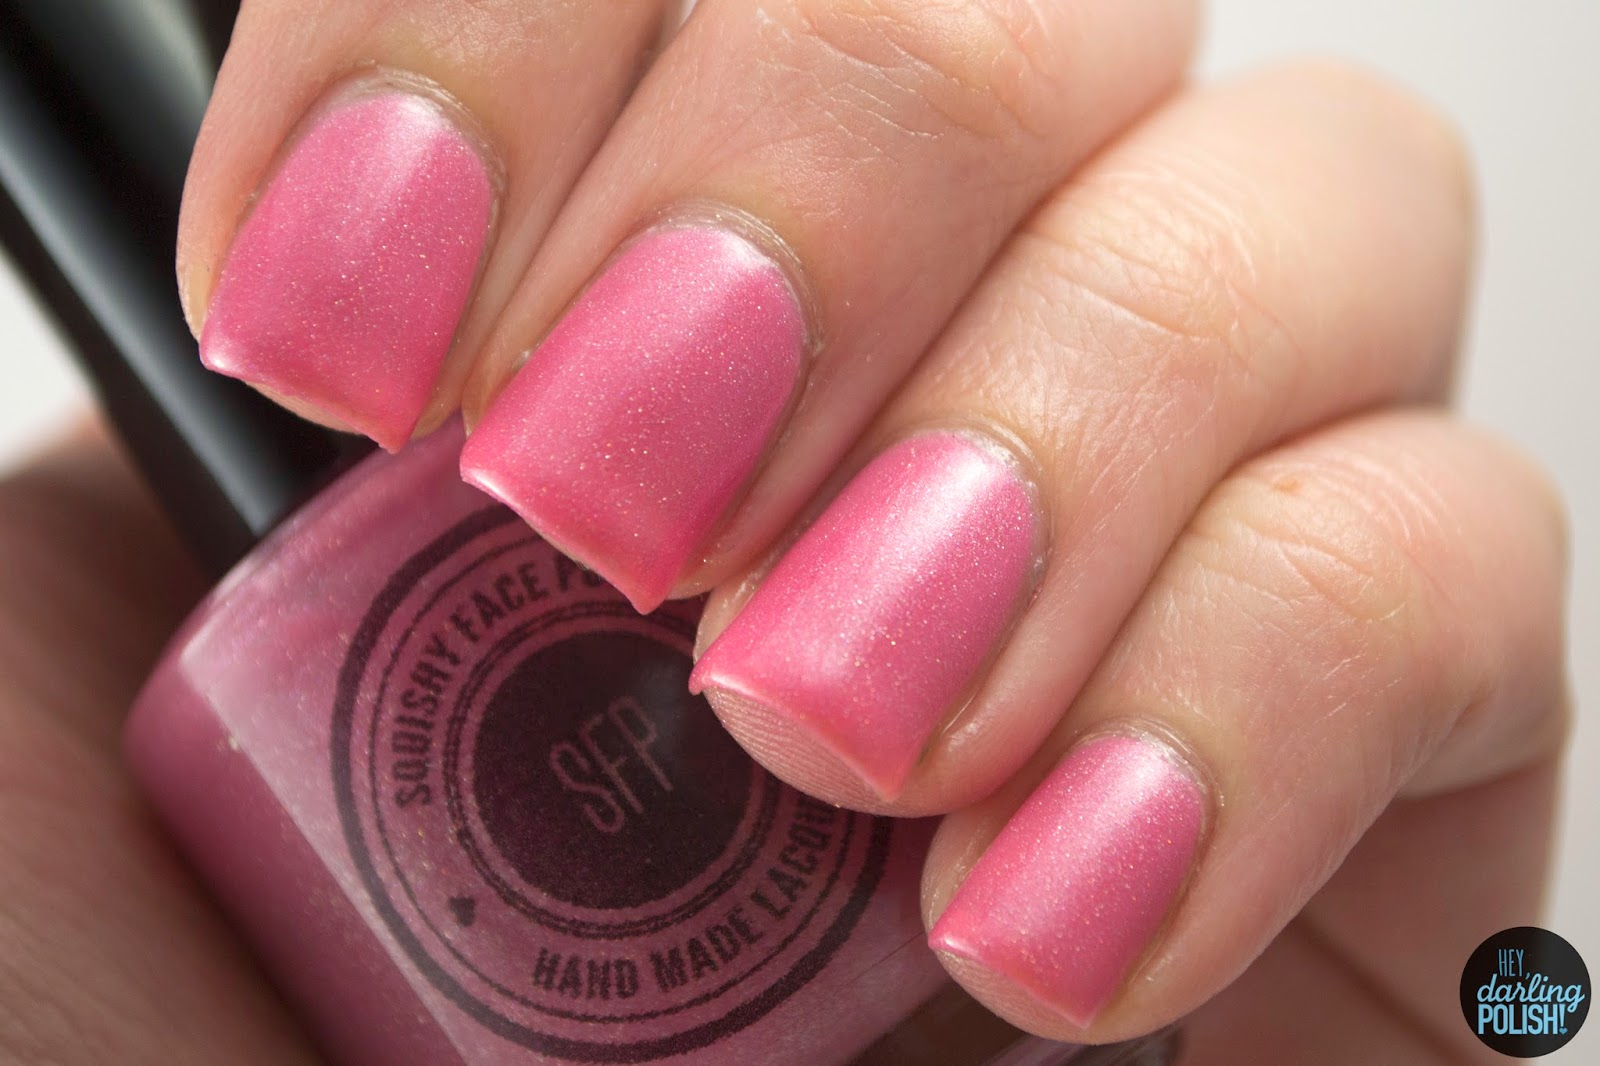 nails, nail polish, indie, indie polish, pink, pink anemonemone, squishy face polish, swatch, hey darling polish